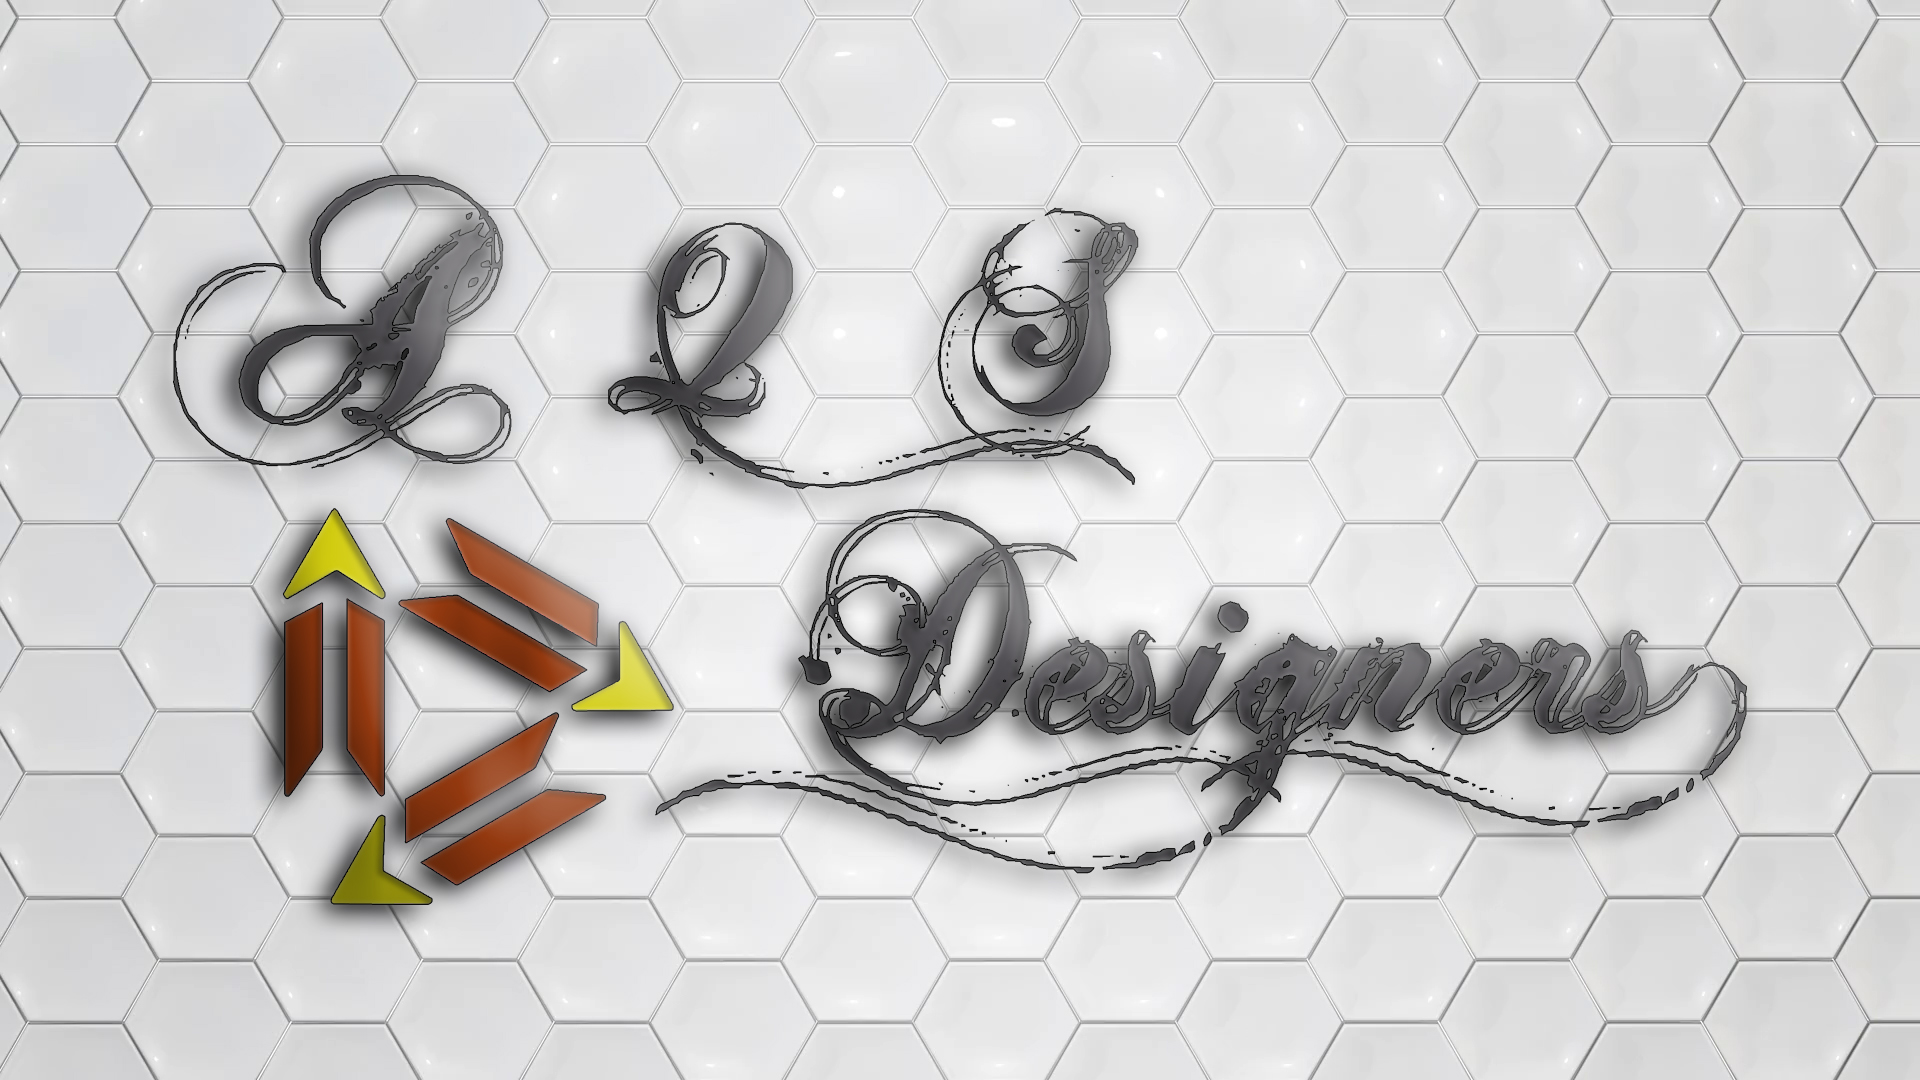 Graphic and Logo Designer. Photoshop Expert. Photos Editing or Retouching